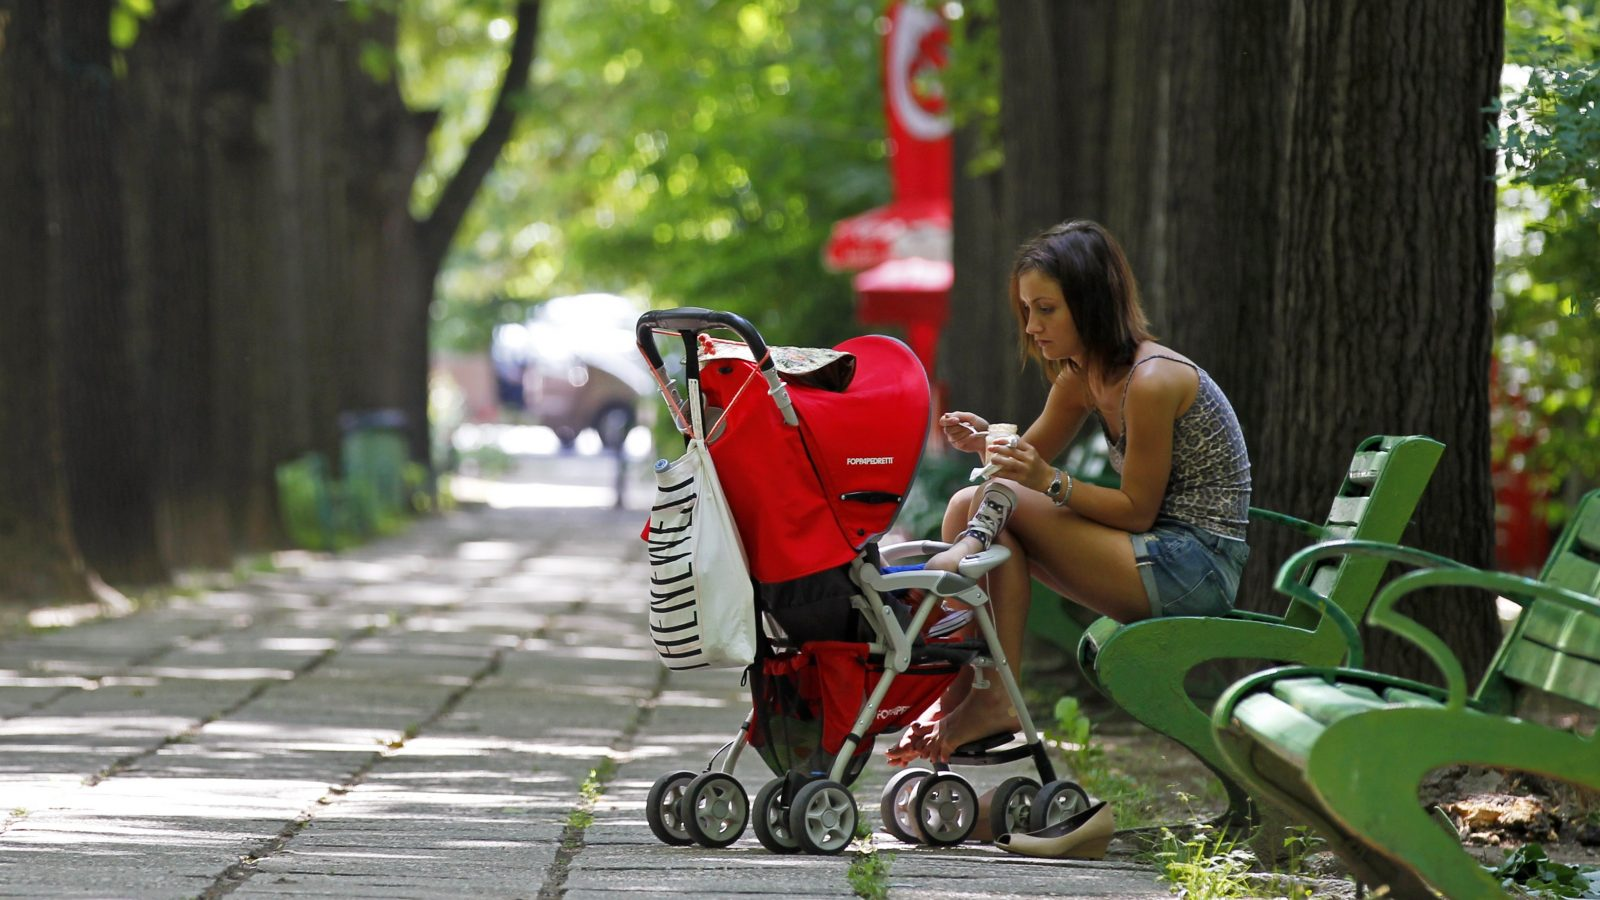 A woman feeds her child in a park in Bucharest June 7, 2013.   REUTERS/Bogdan Cristel (ROMANIA - Tags: SOCIETY) - RTX10F26